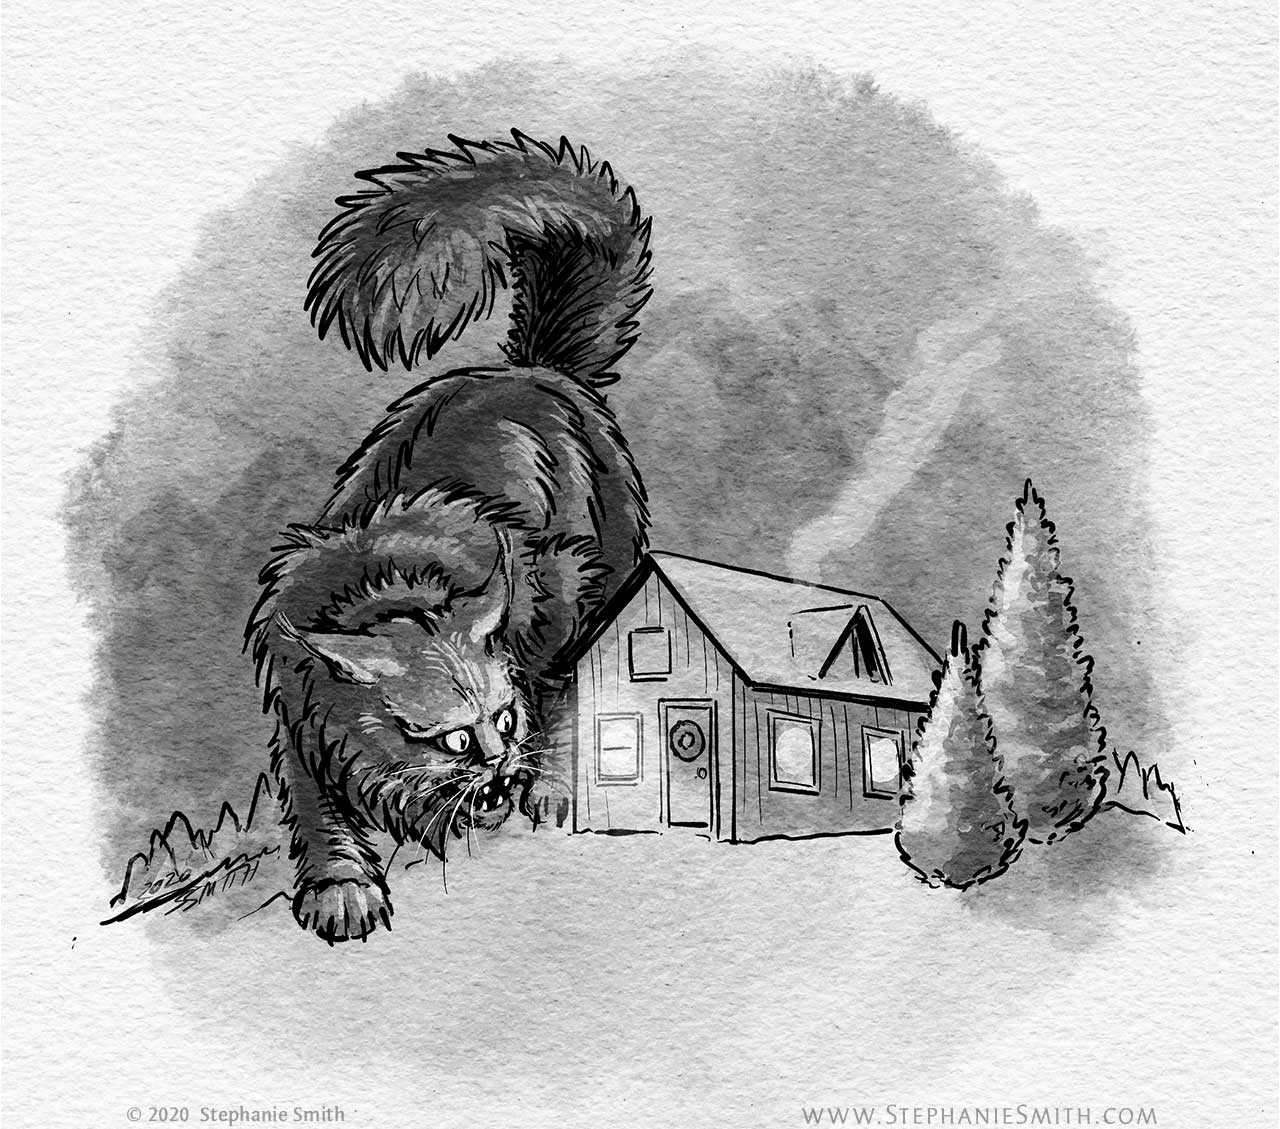 Drawing of a giant black cat peeking in the window of a small house in the winter woods.